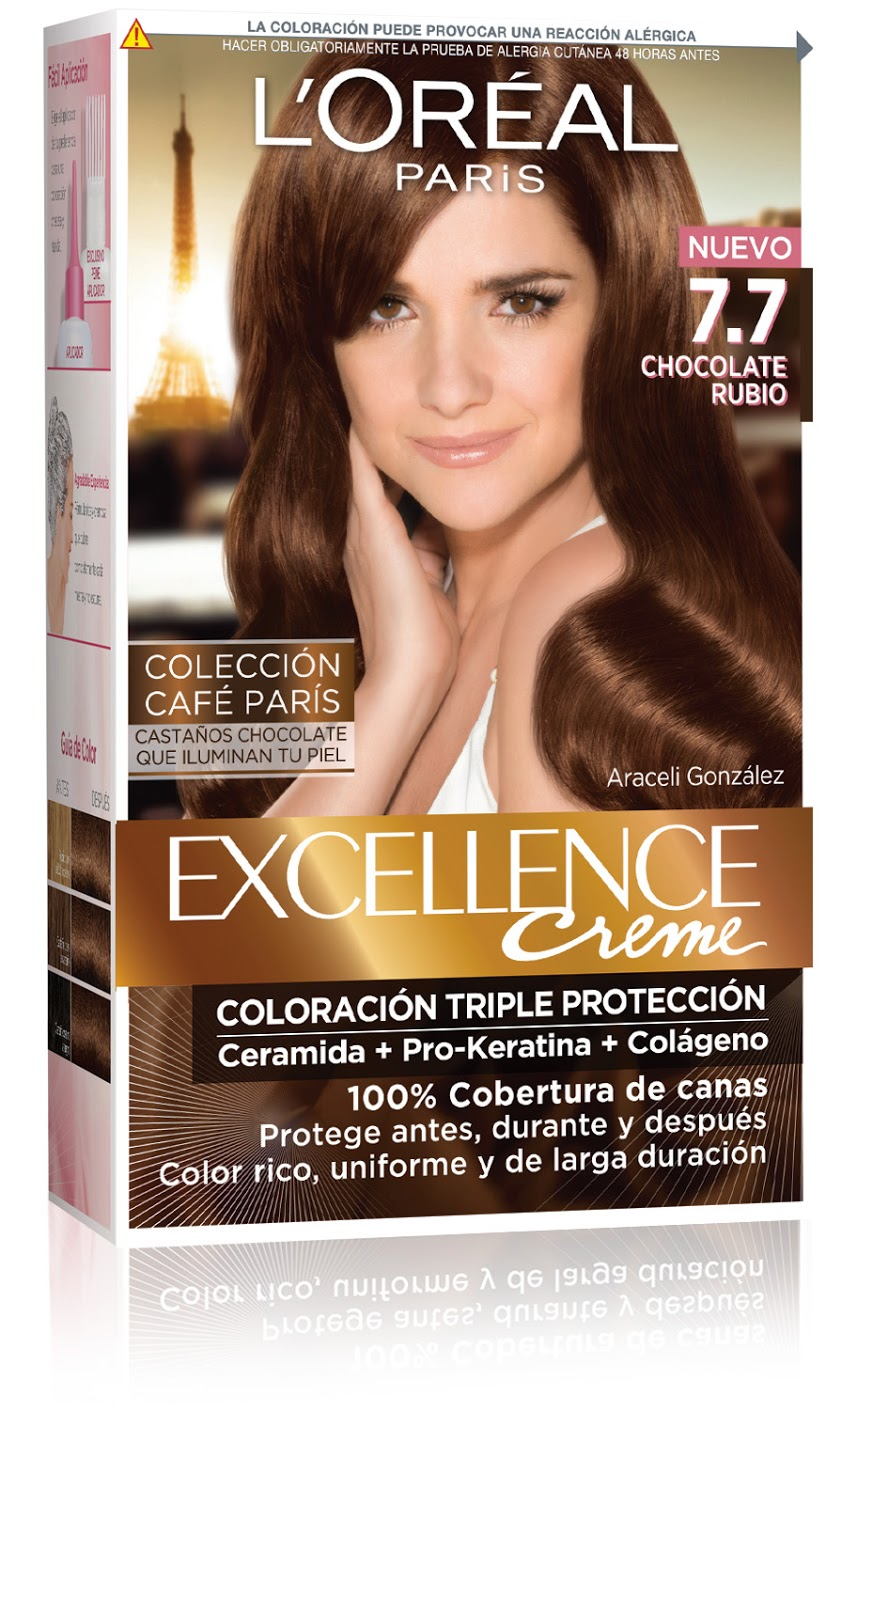 Nueva Colecci�n Caf� Paris by Excellence Creme